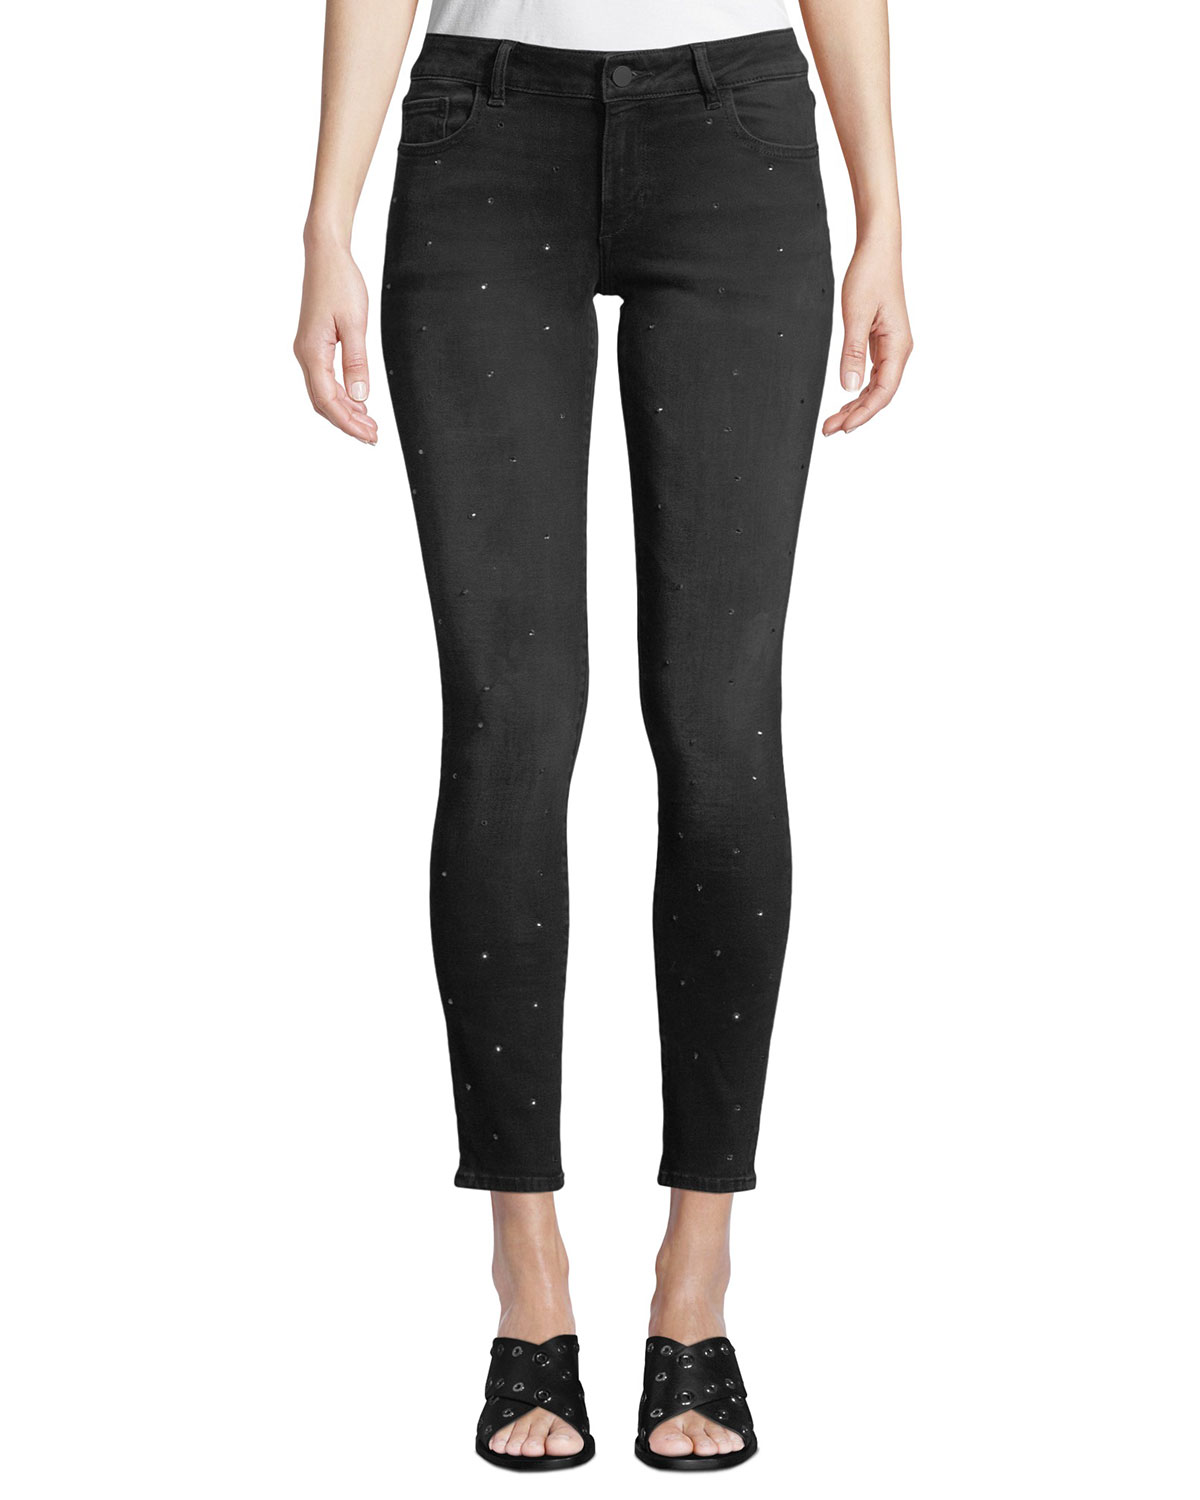 347419357a DL1961 Premium DenimEmma Low-Rise Skinny Ankle Jeans with Rhinestones